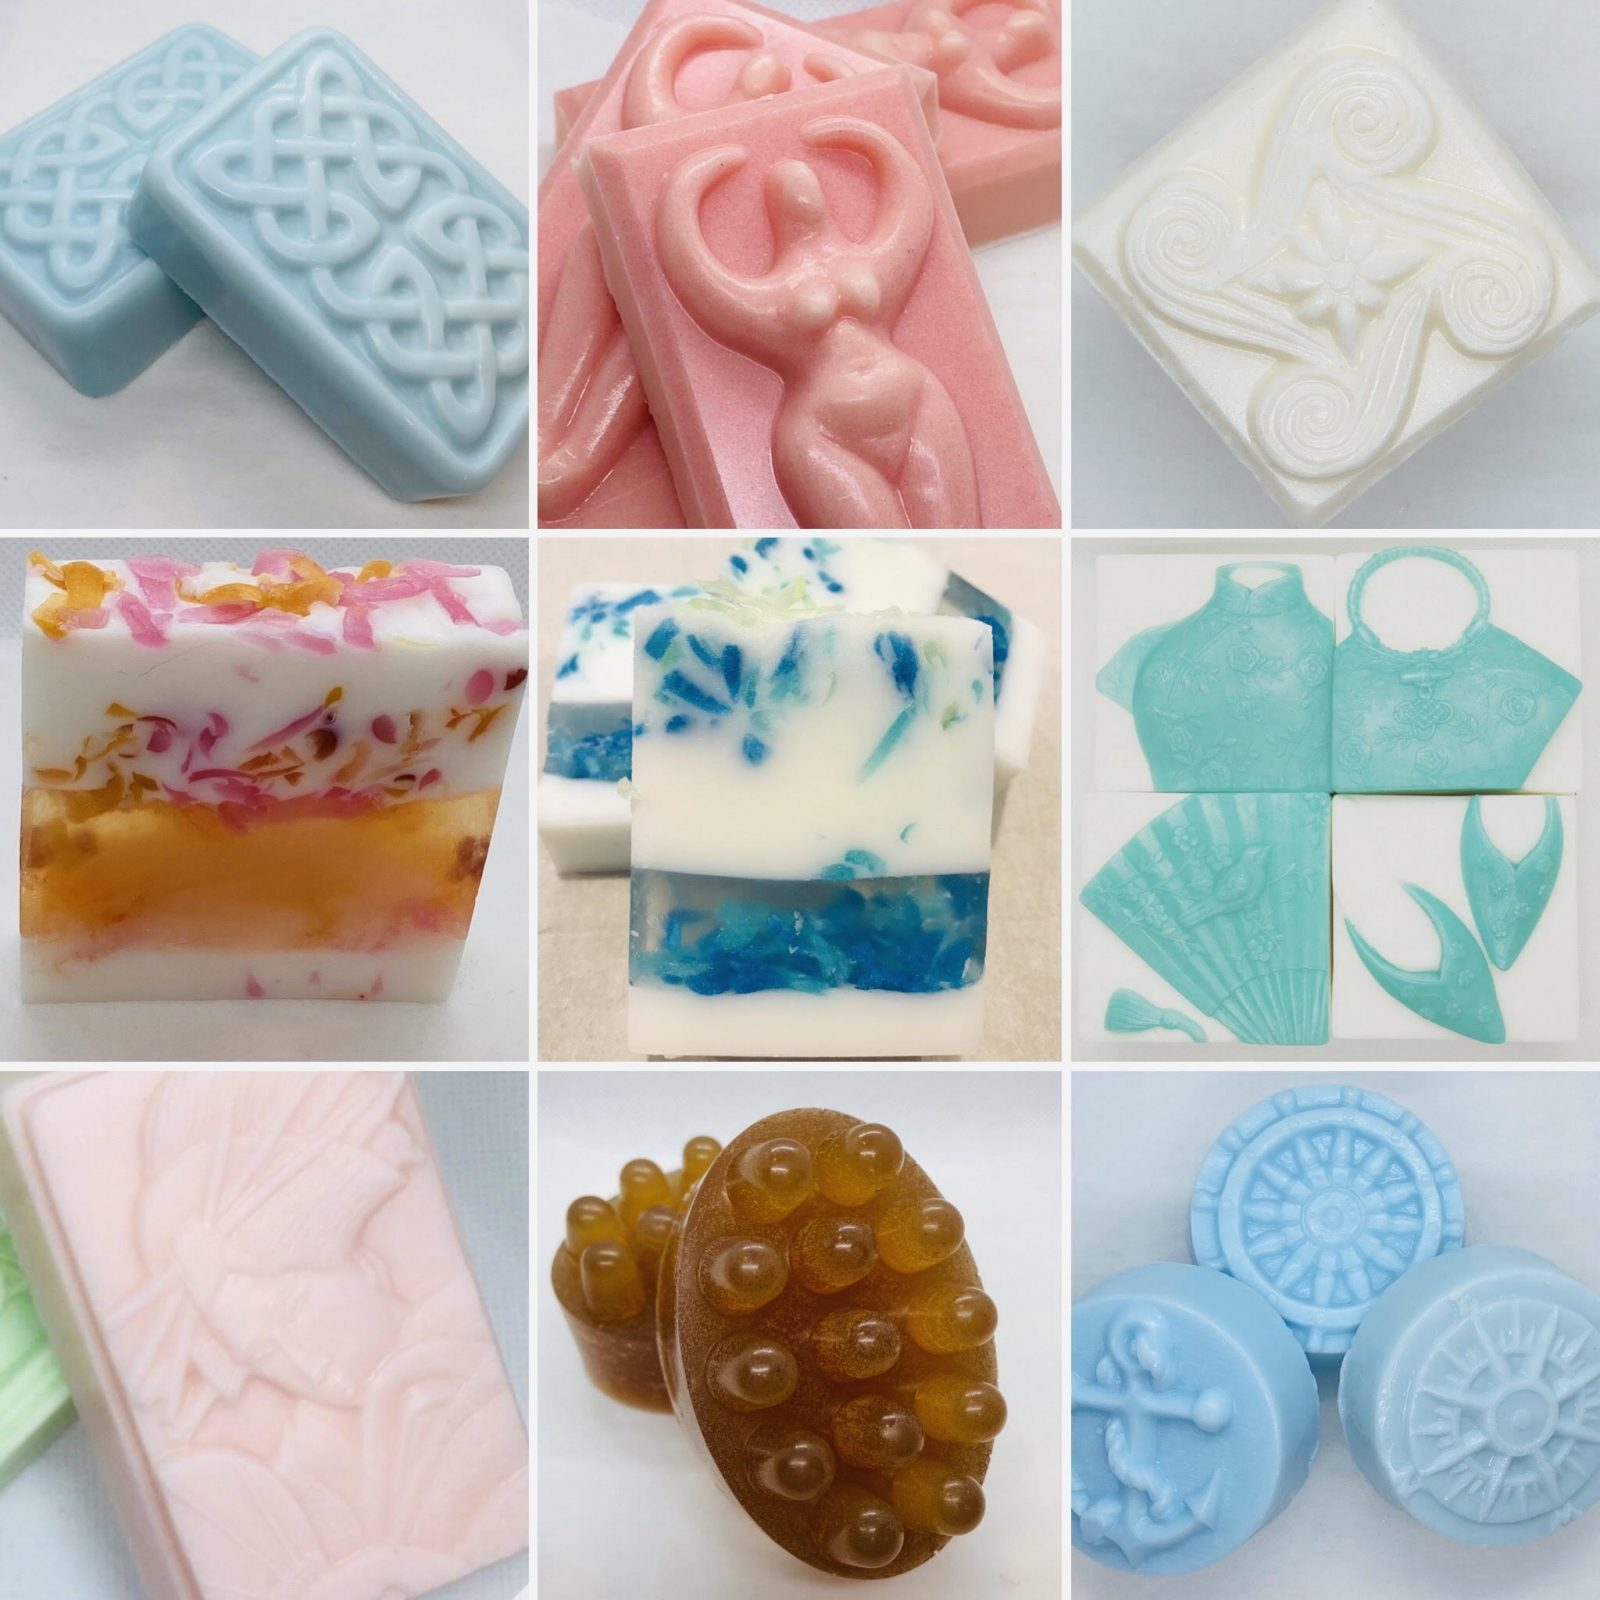 Collage of soaps